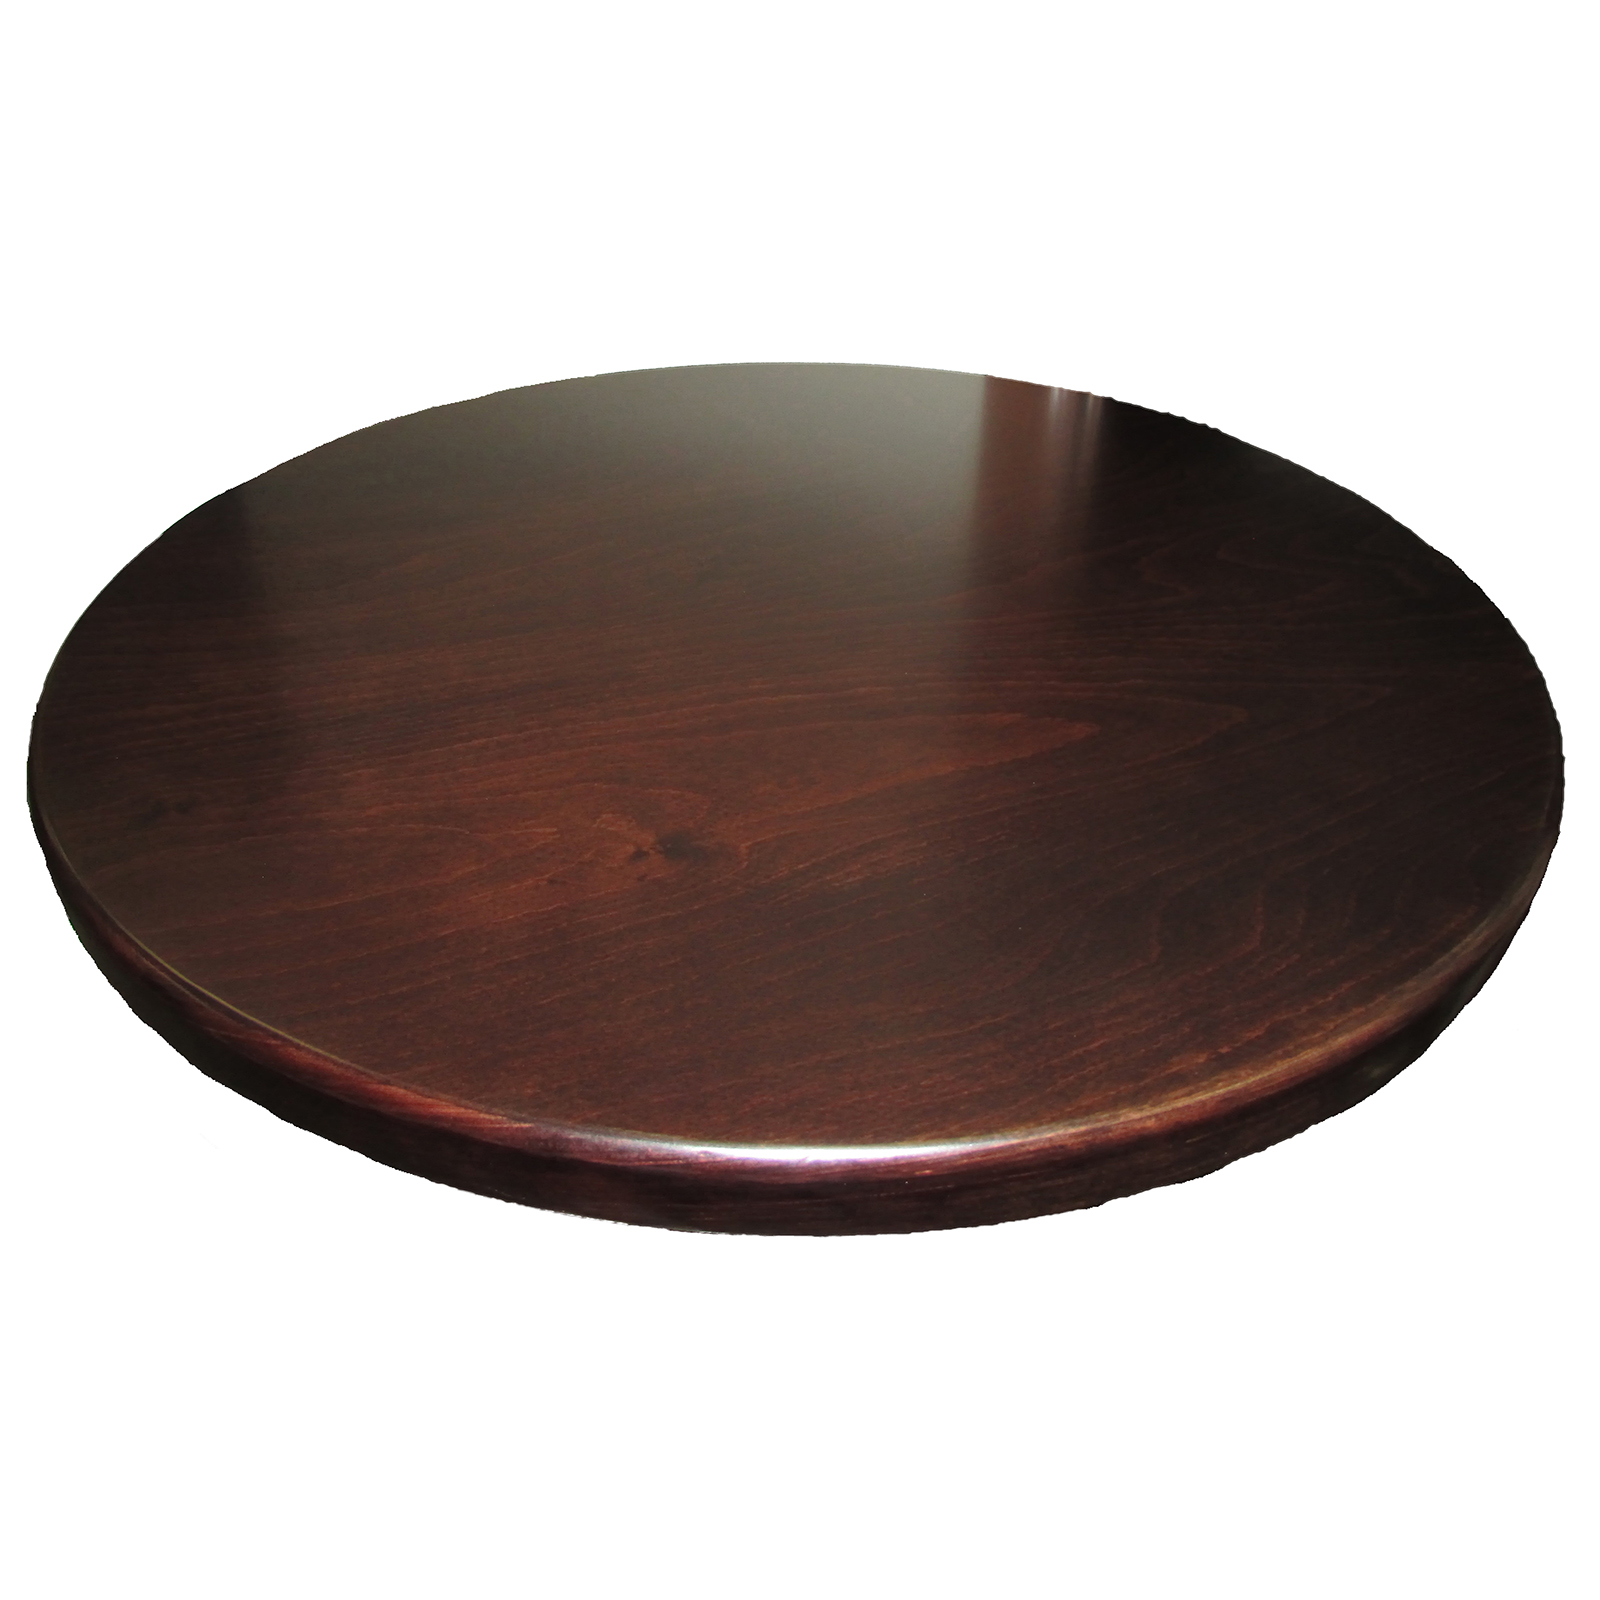 Oak Street UV24R-WAL table top, coated